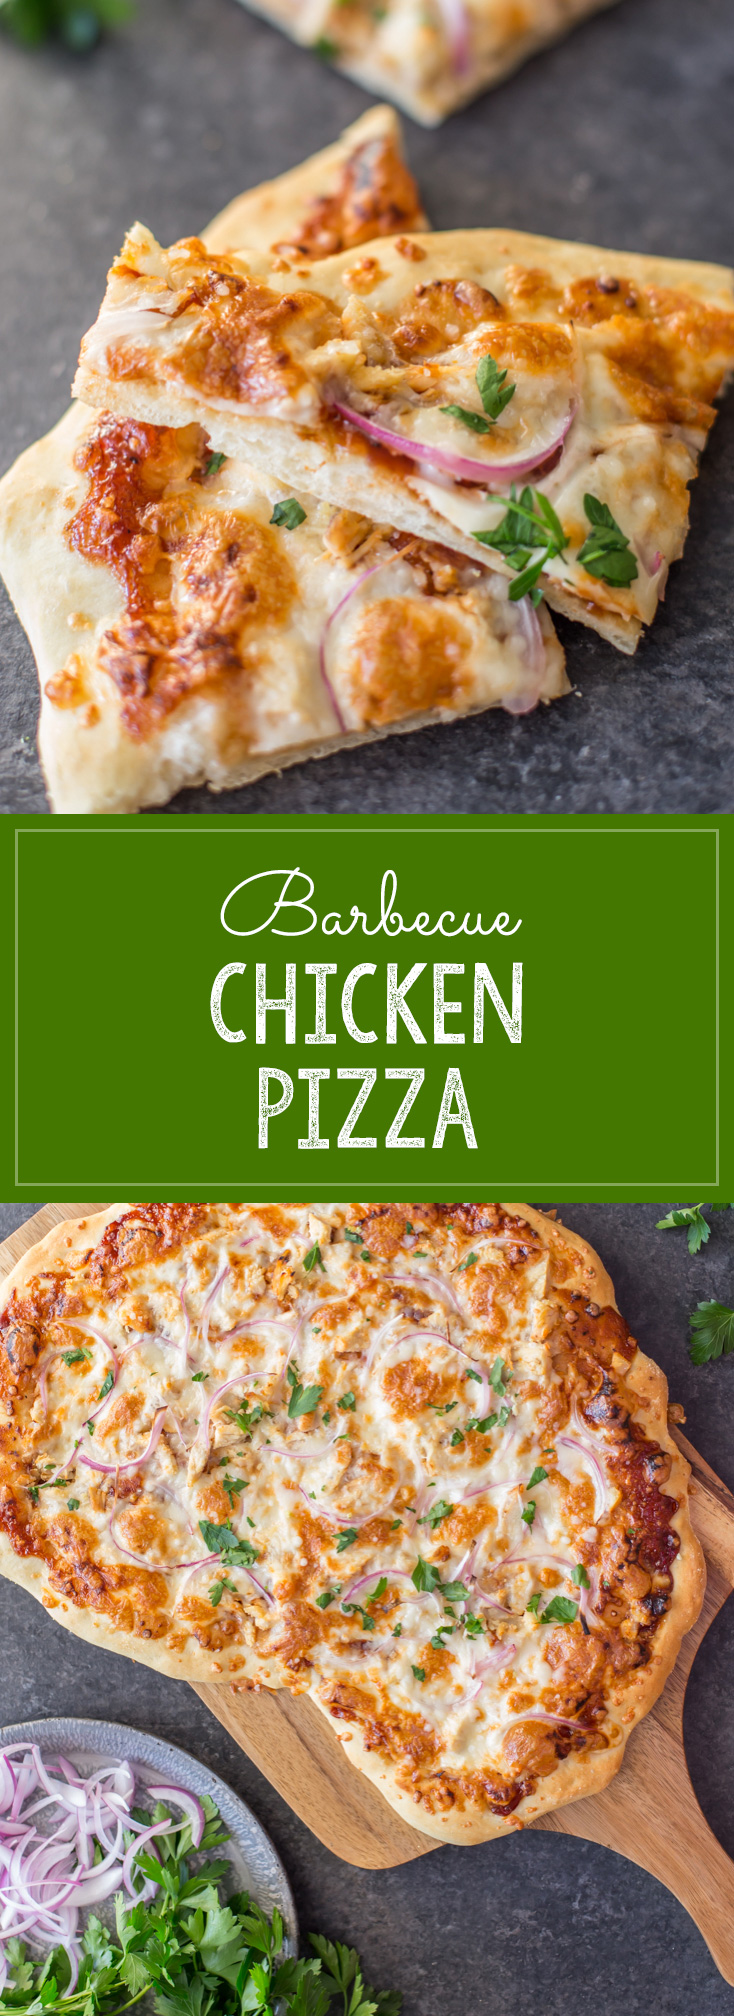 Barbeque Chicken Pizza - Homemade pizza dough topped with barbecue sauce, grilled chicken, mozzarella cheese and red onions. A family favorite!